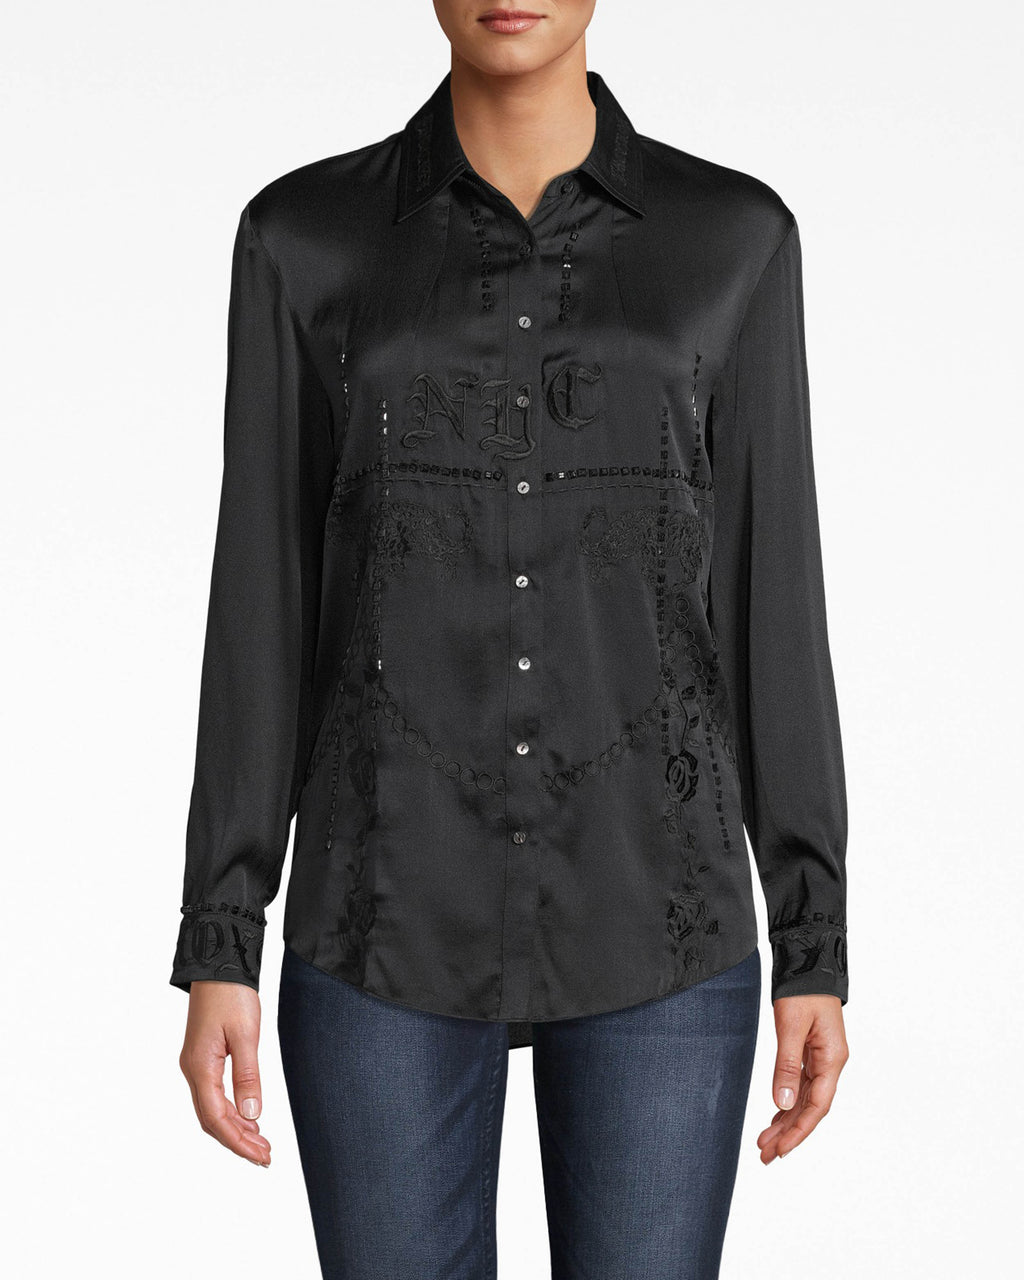 CA20072 - STRETCH CHARMEUSE EMBROIDERED BOYFRIEND SHIRT - tops - shirts - Grab this stretch charmeuse boyfriend shirt and go. Look twice and you'll catch the intricate beading and embroidery.